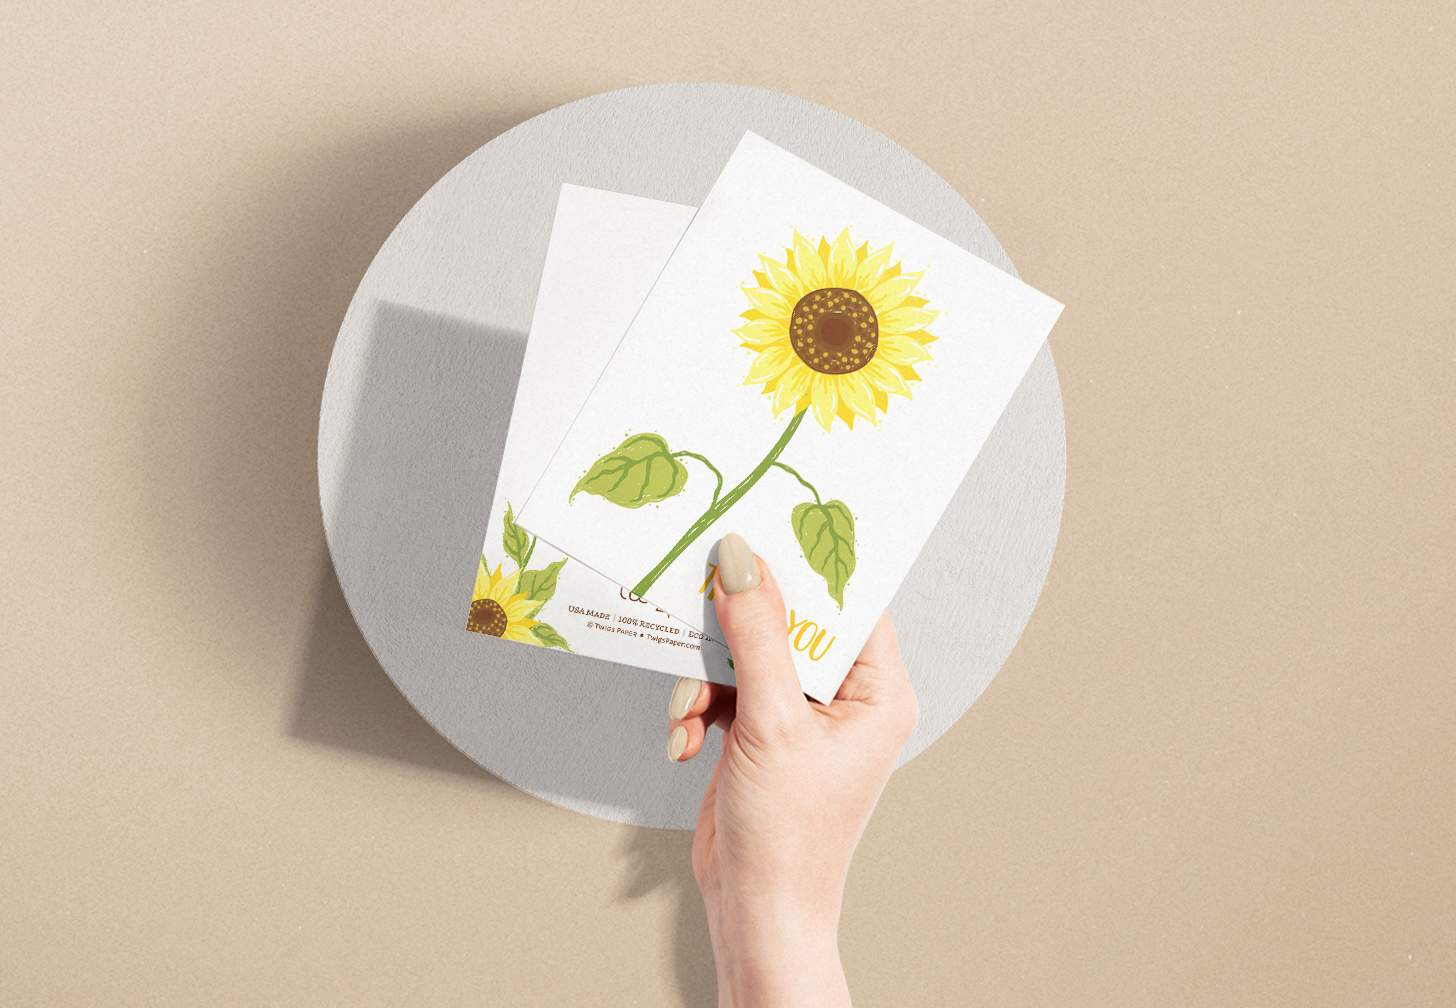 Hands holding yellow sunflower design with brown background